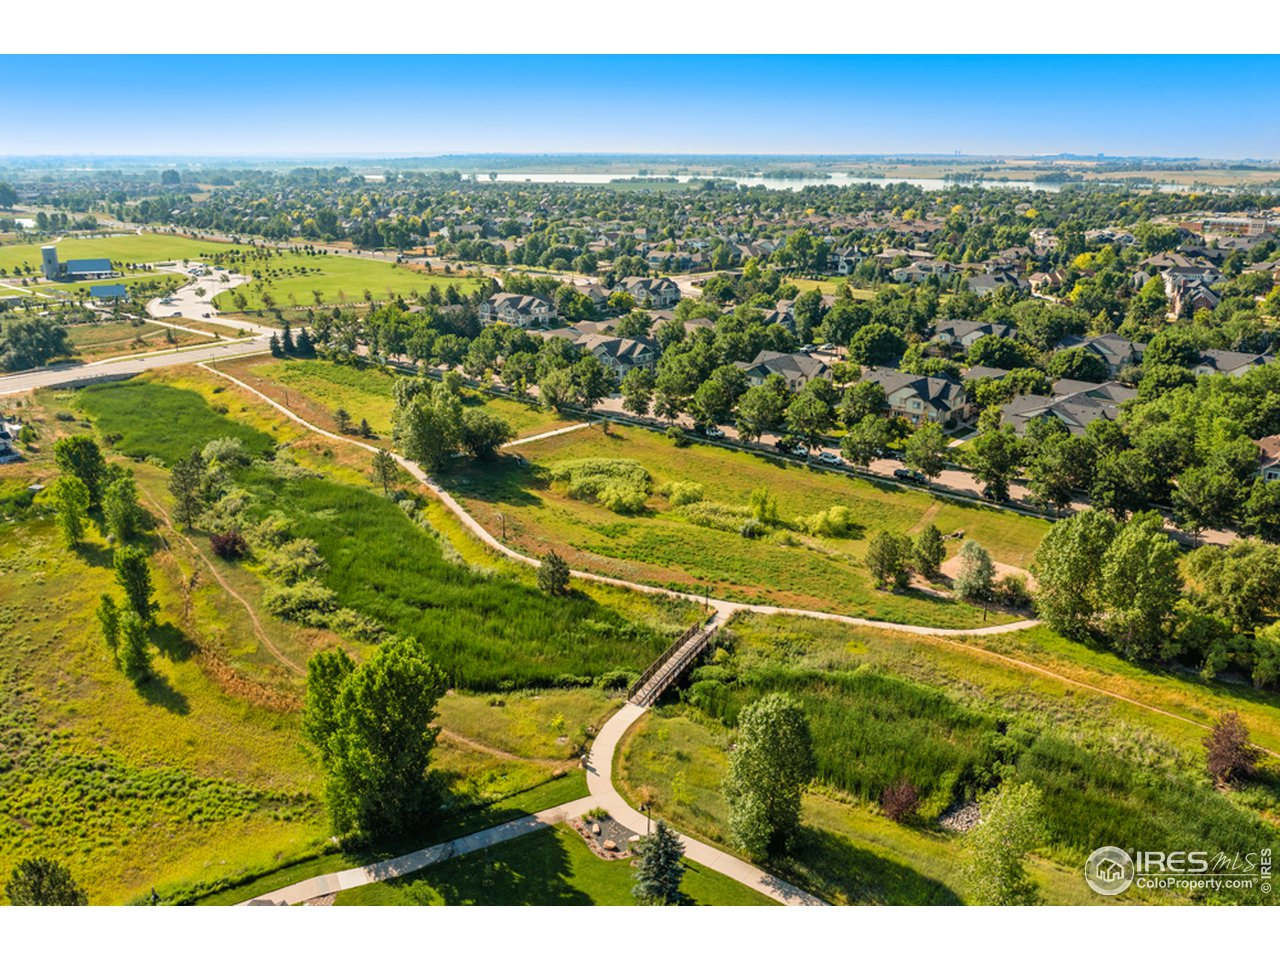 Neighborhood trail system - connects to Twin Silo Park